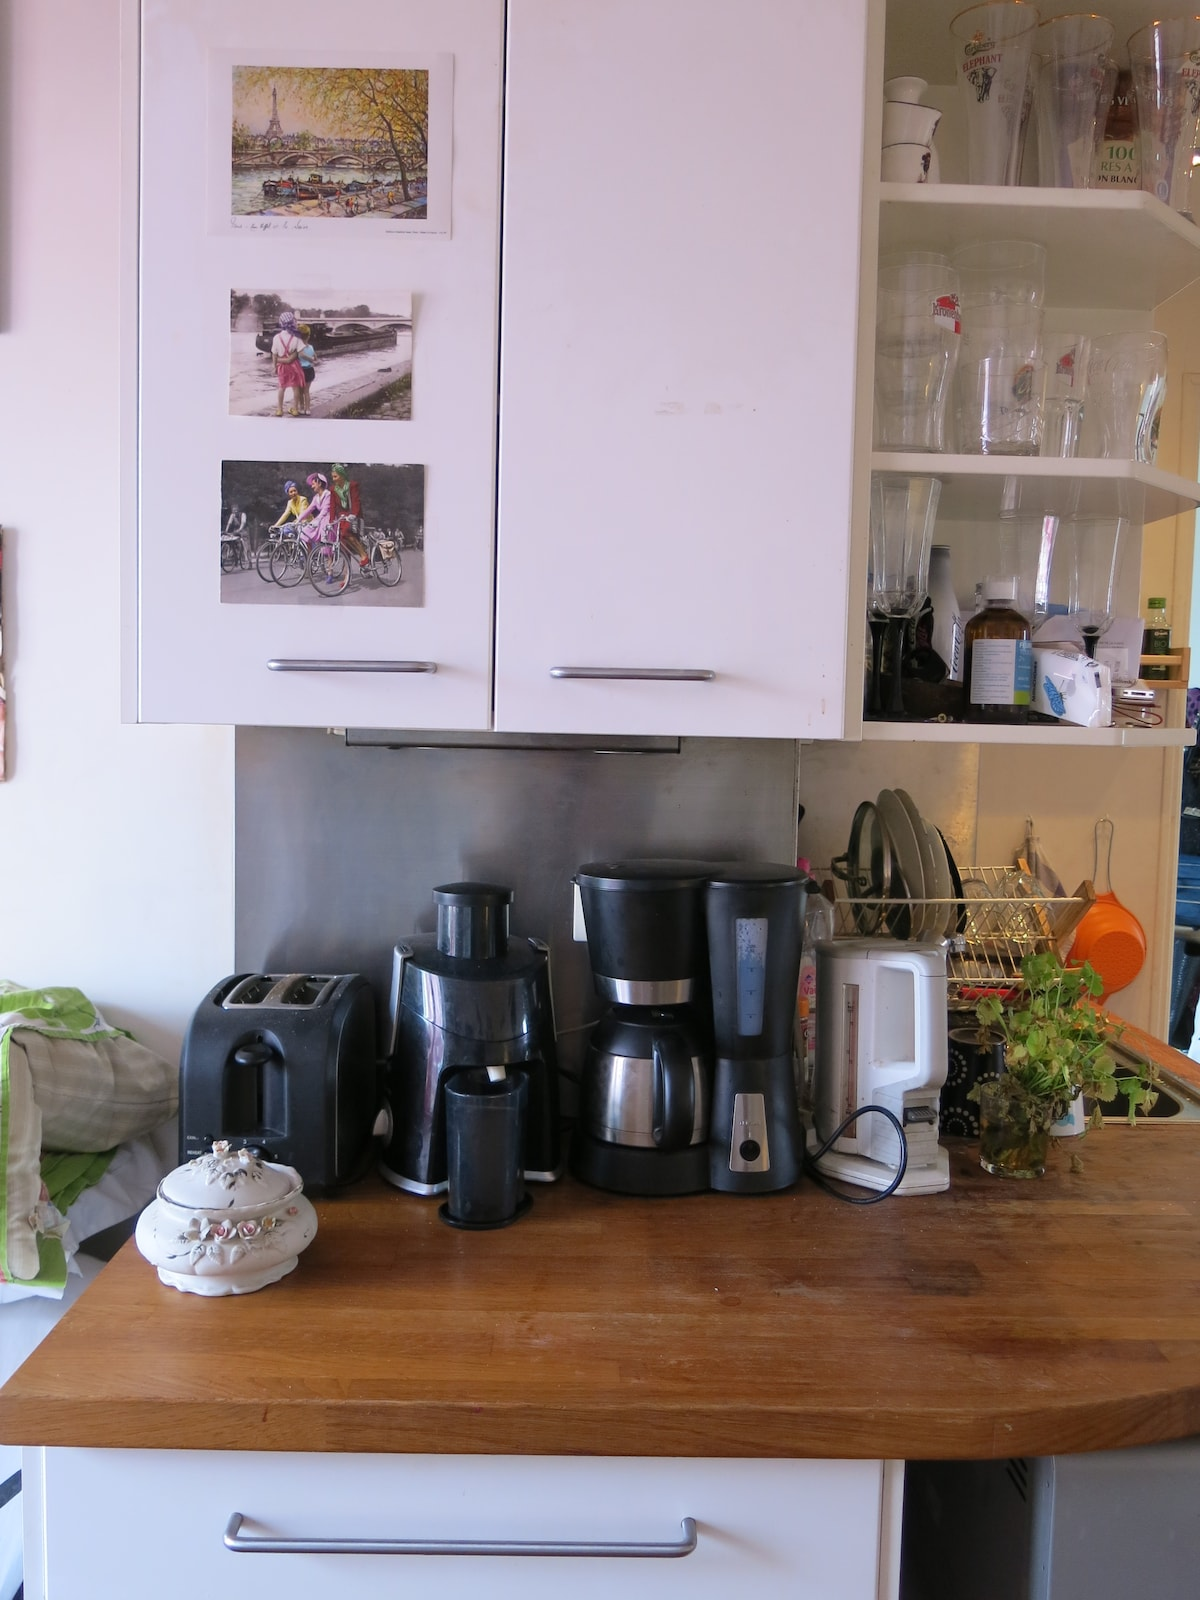 Kitchen appliances: toaster, juicer, coffee machine, kettle. Oven & microwave not pictured.